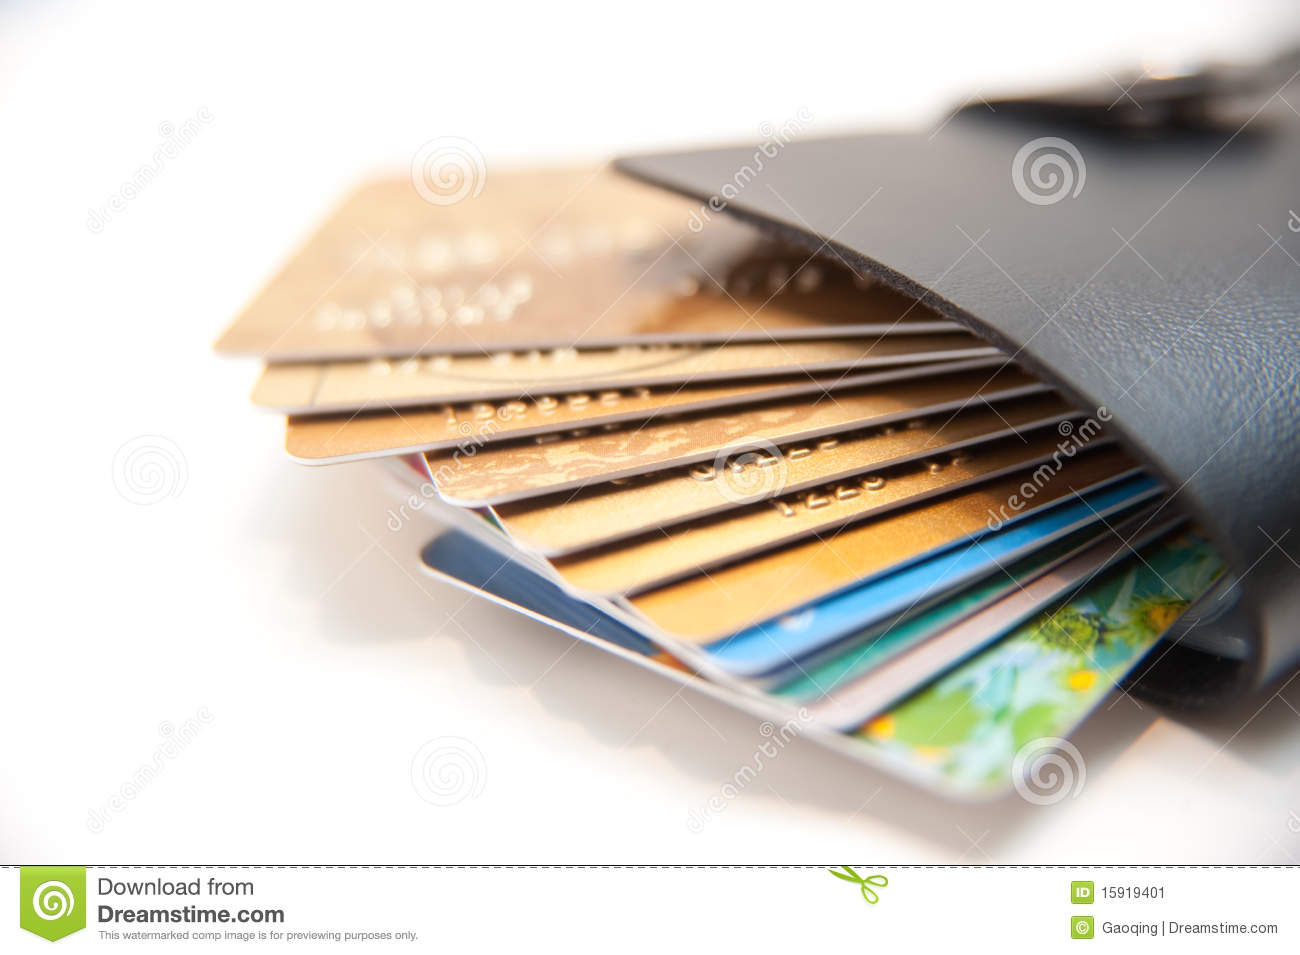 too much credit card in wallet stock image - image of background